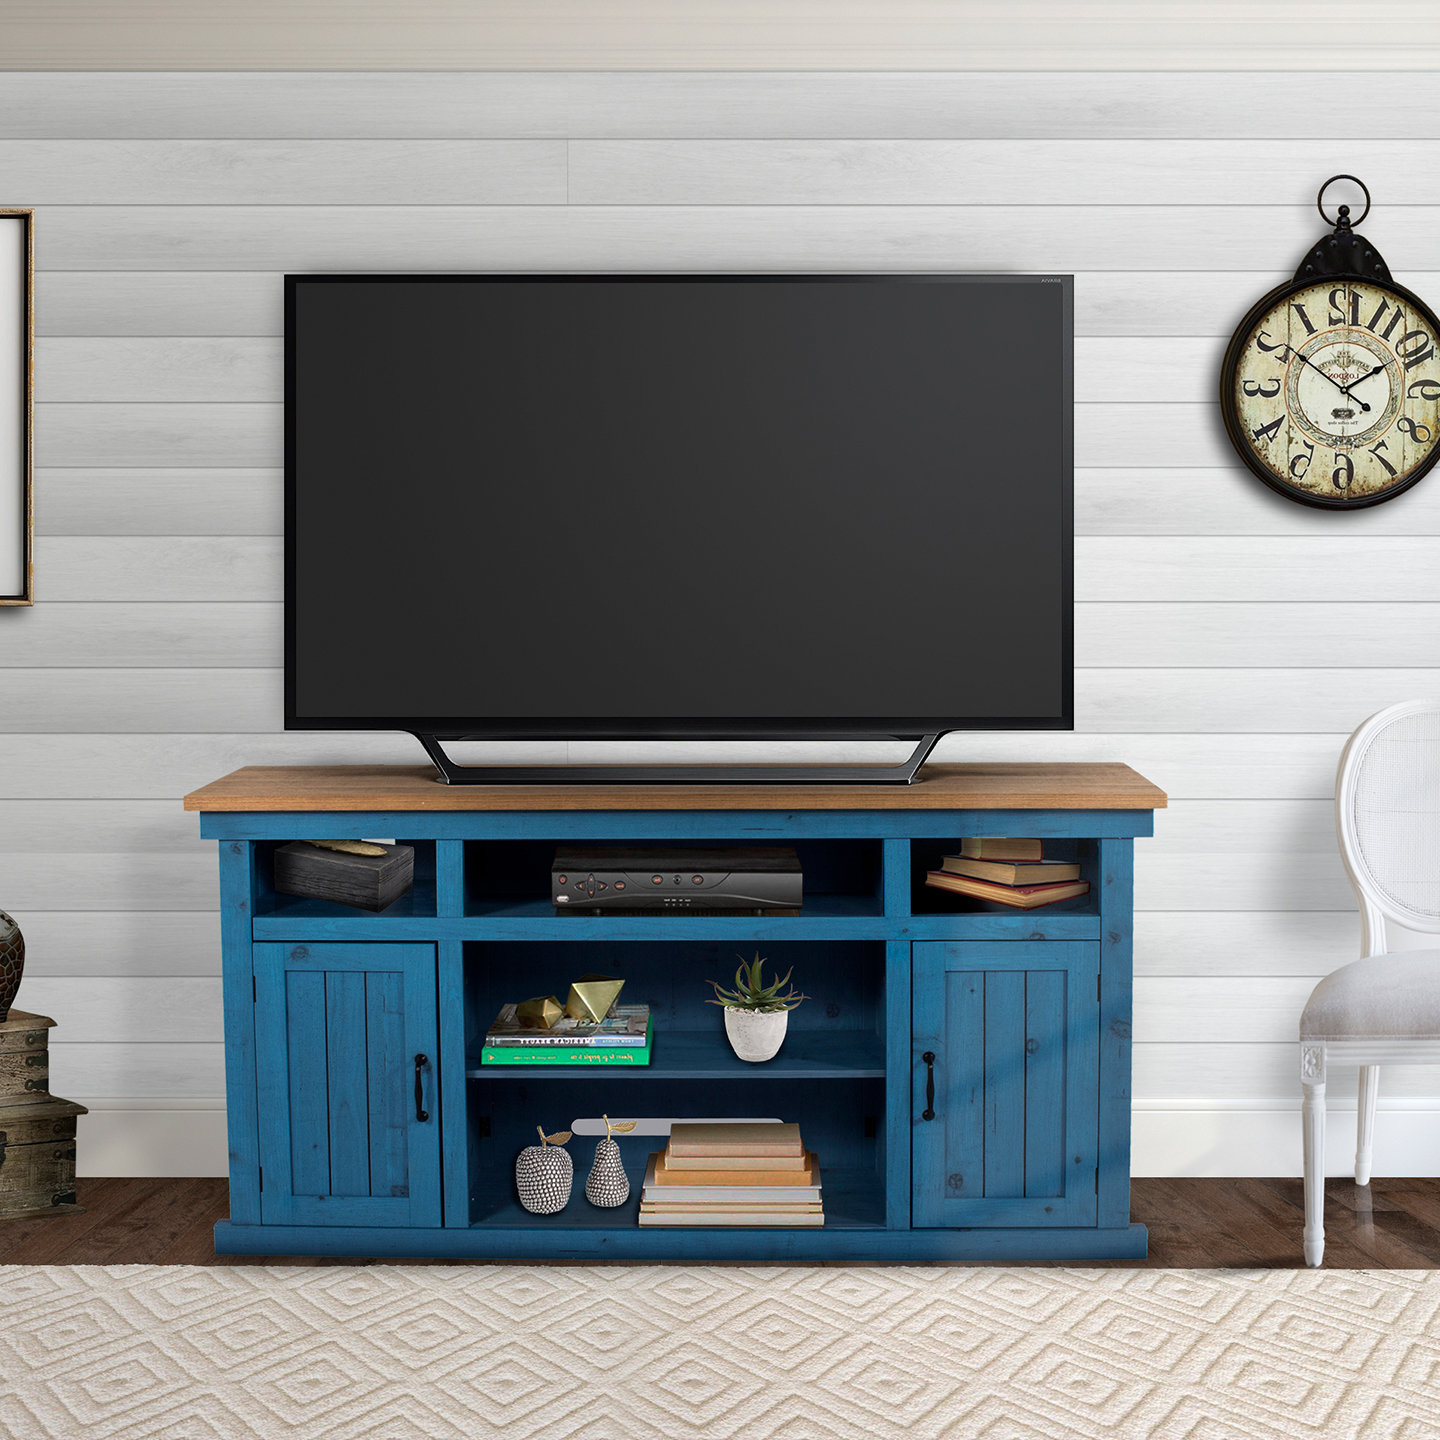 Blue Tv Stands You'll Love | Wayfair With Regard To Century Blue 60 Inch Tv Stands (Gallery 12 of 20)